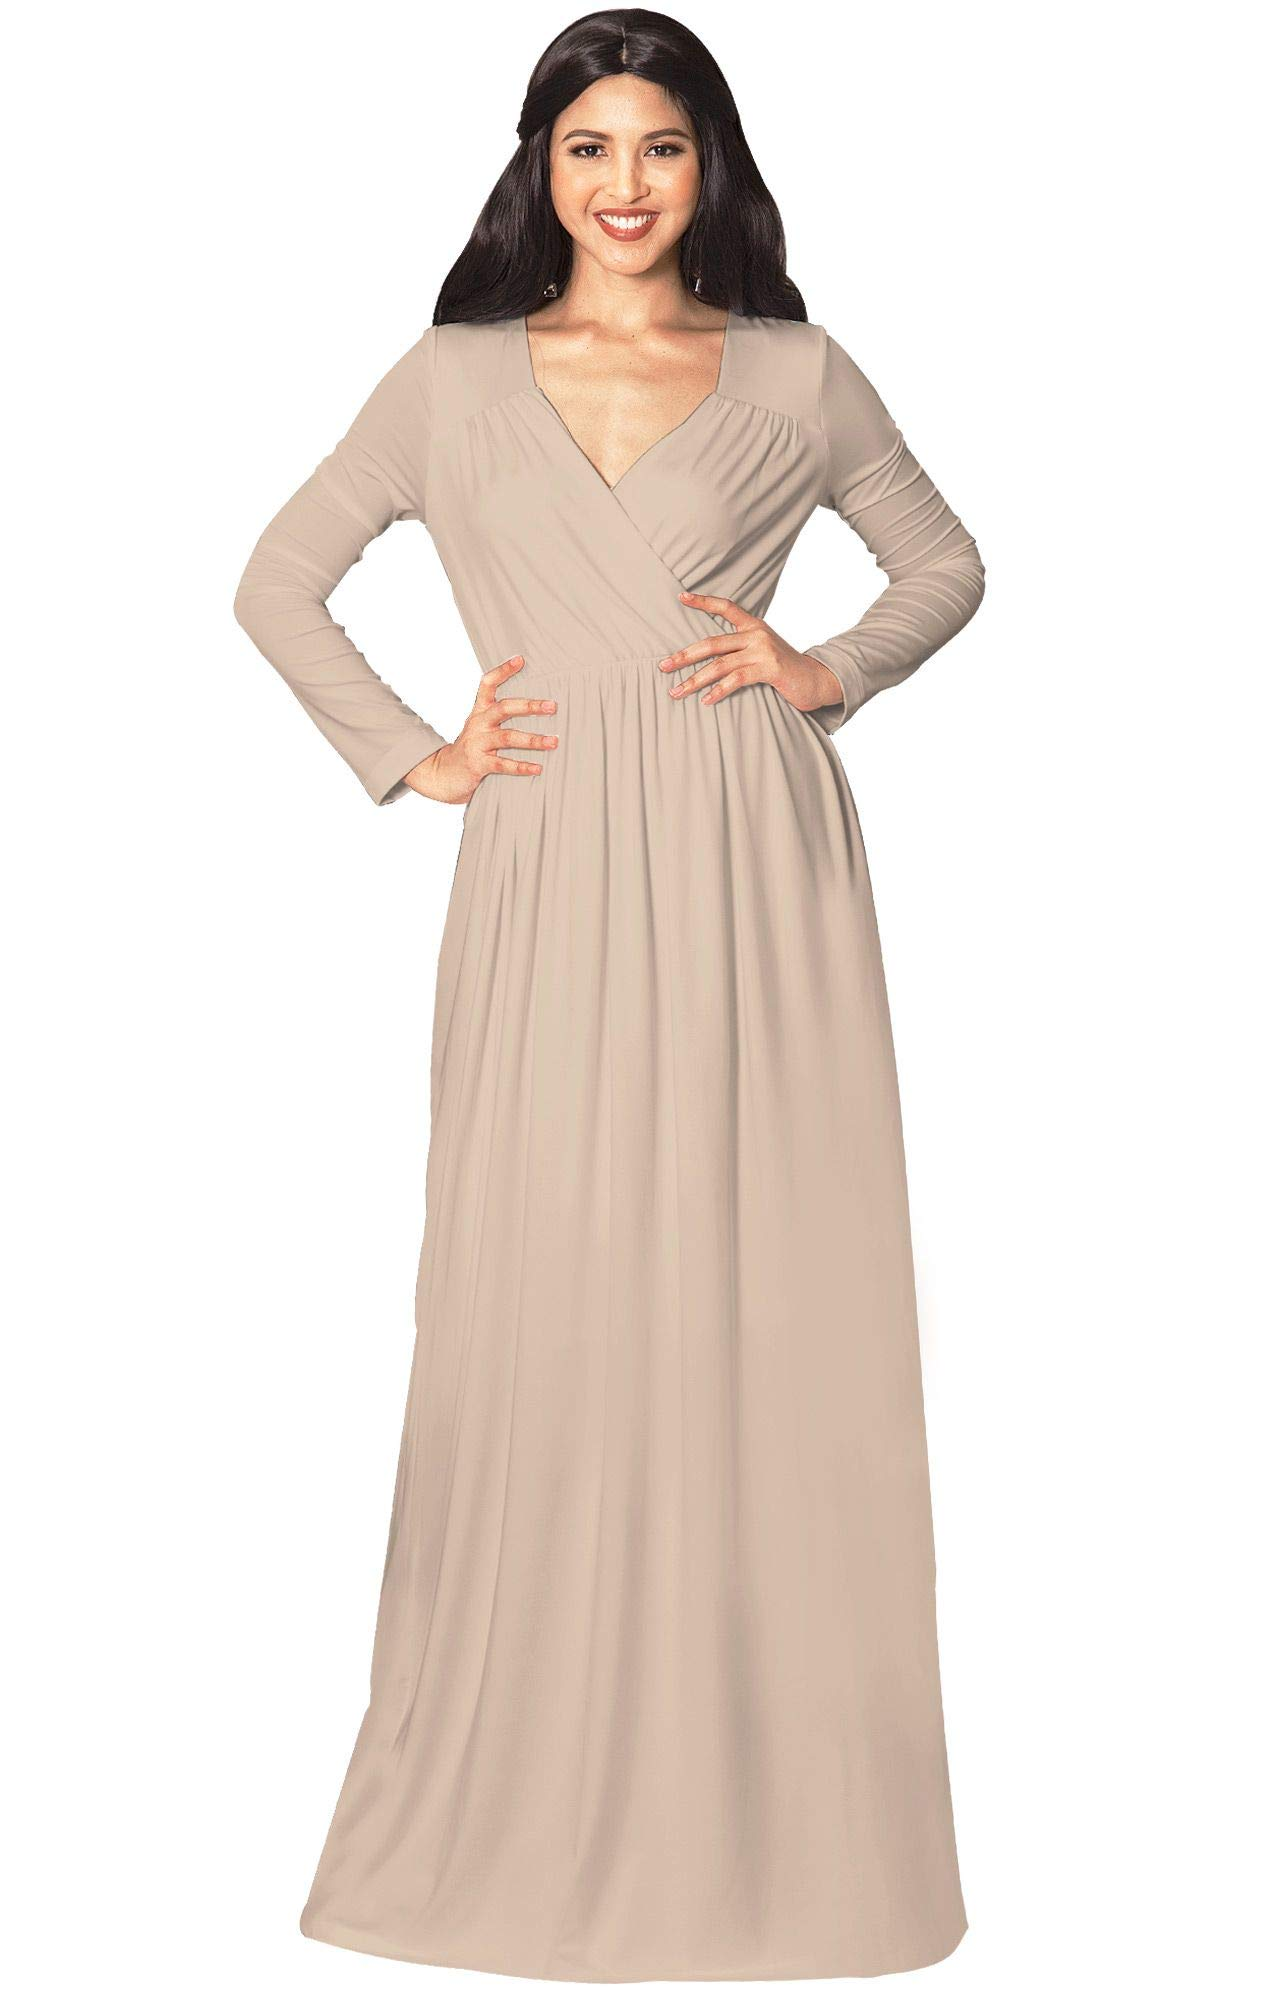 f206354c31 KOH KOH Plus Size Womens Long Sleeve Sleeves Empire Waist Floor-Length  Cocktail Elegant Evening Fall Modest Winter Formal Abaya Cute Gown Gowns  Maxi Dress ...